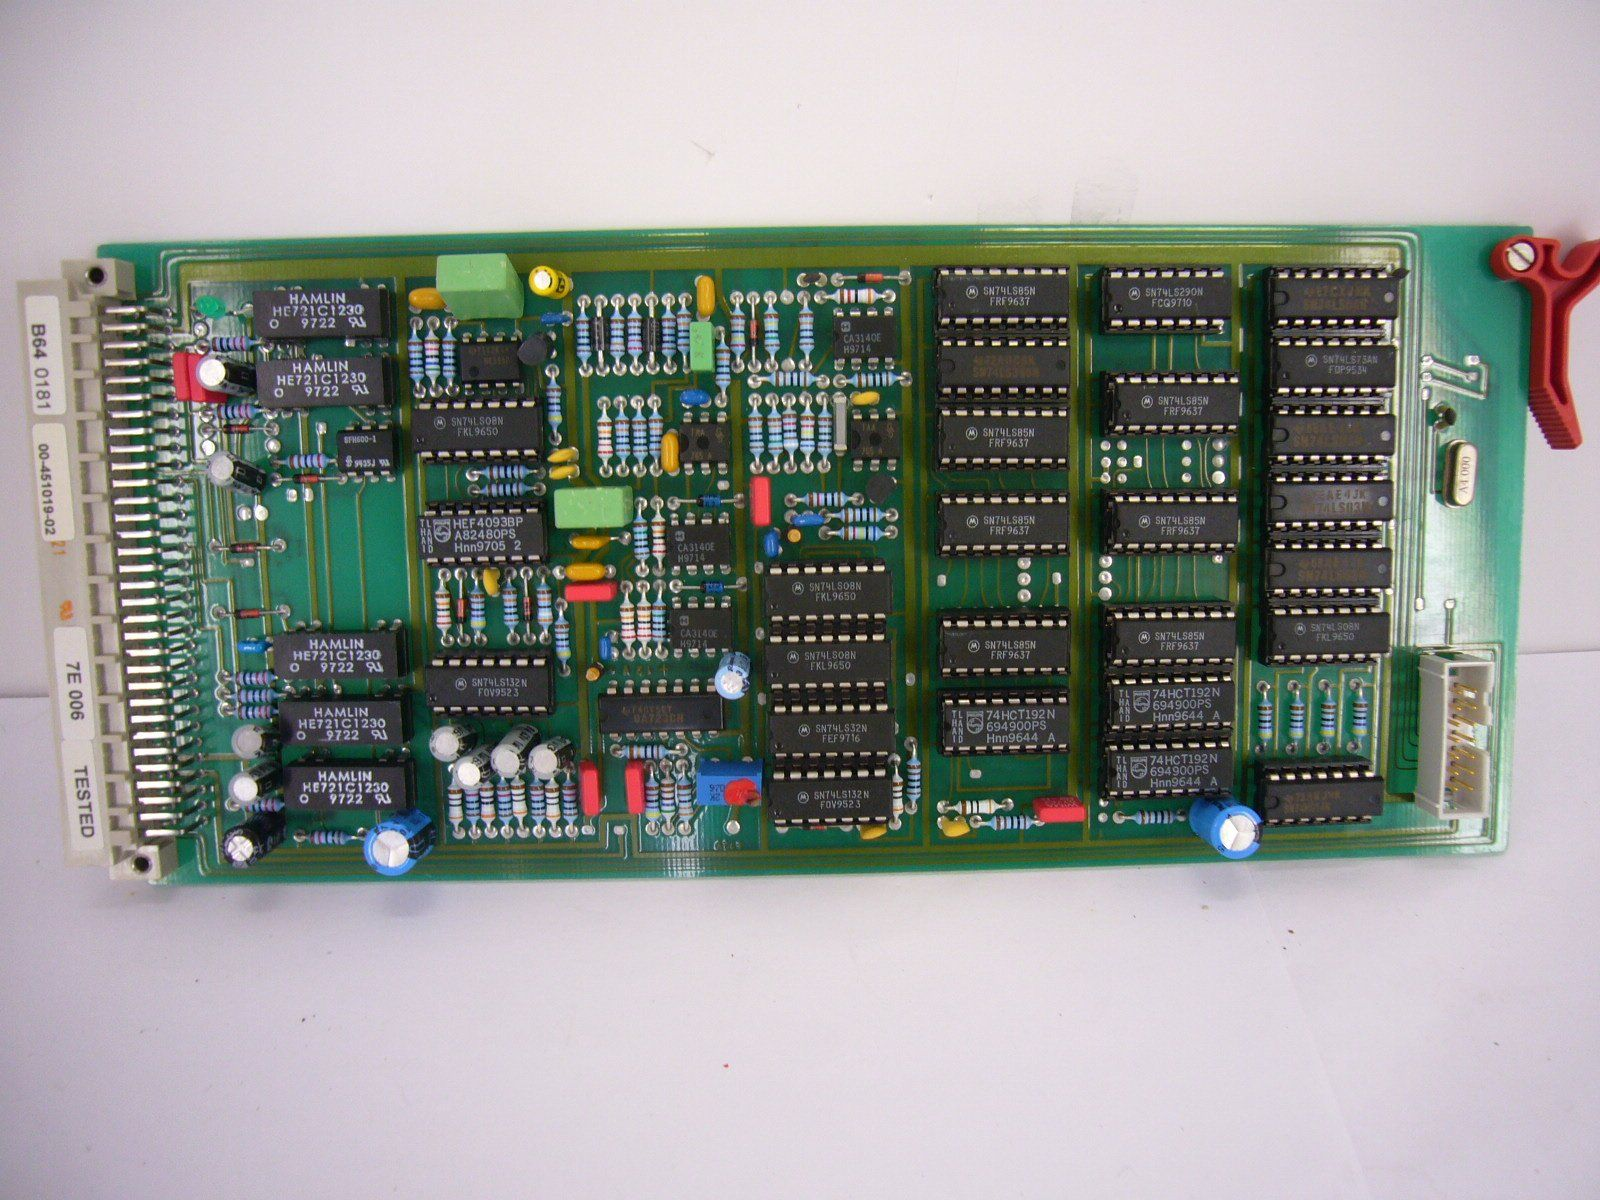 PCB Boards - OEC-7600/7700 COMPACT SERIES C-ARM B64 KV CONTROL & DISPLAY (00-451019-02)